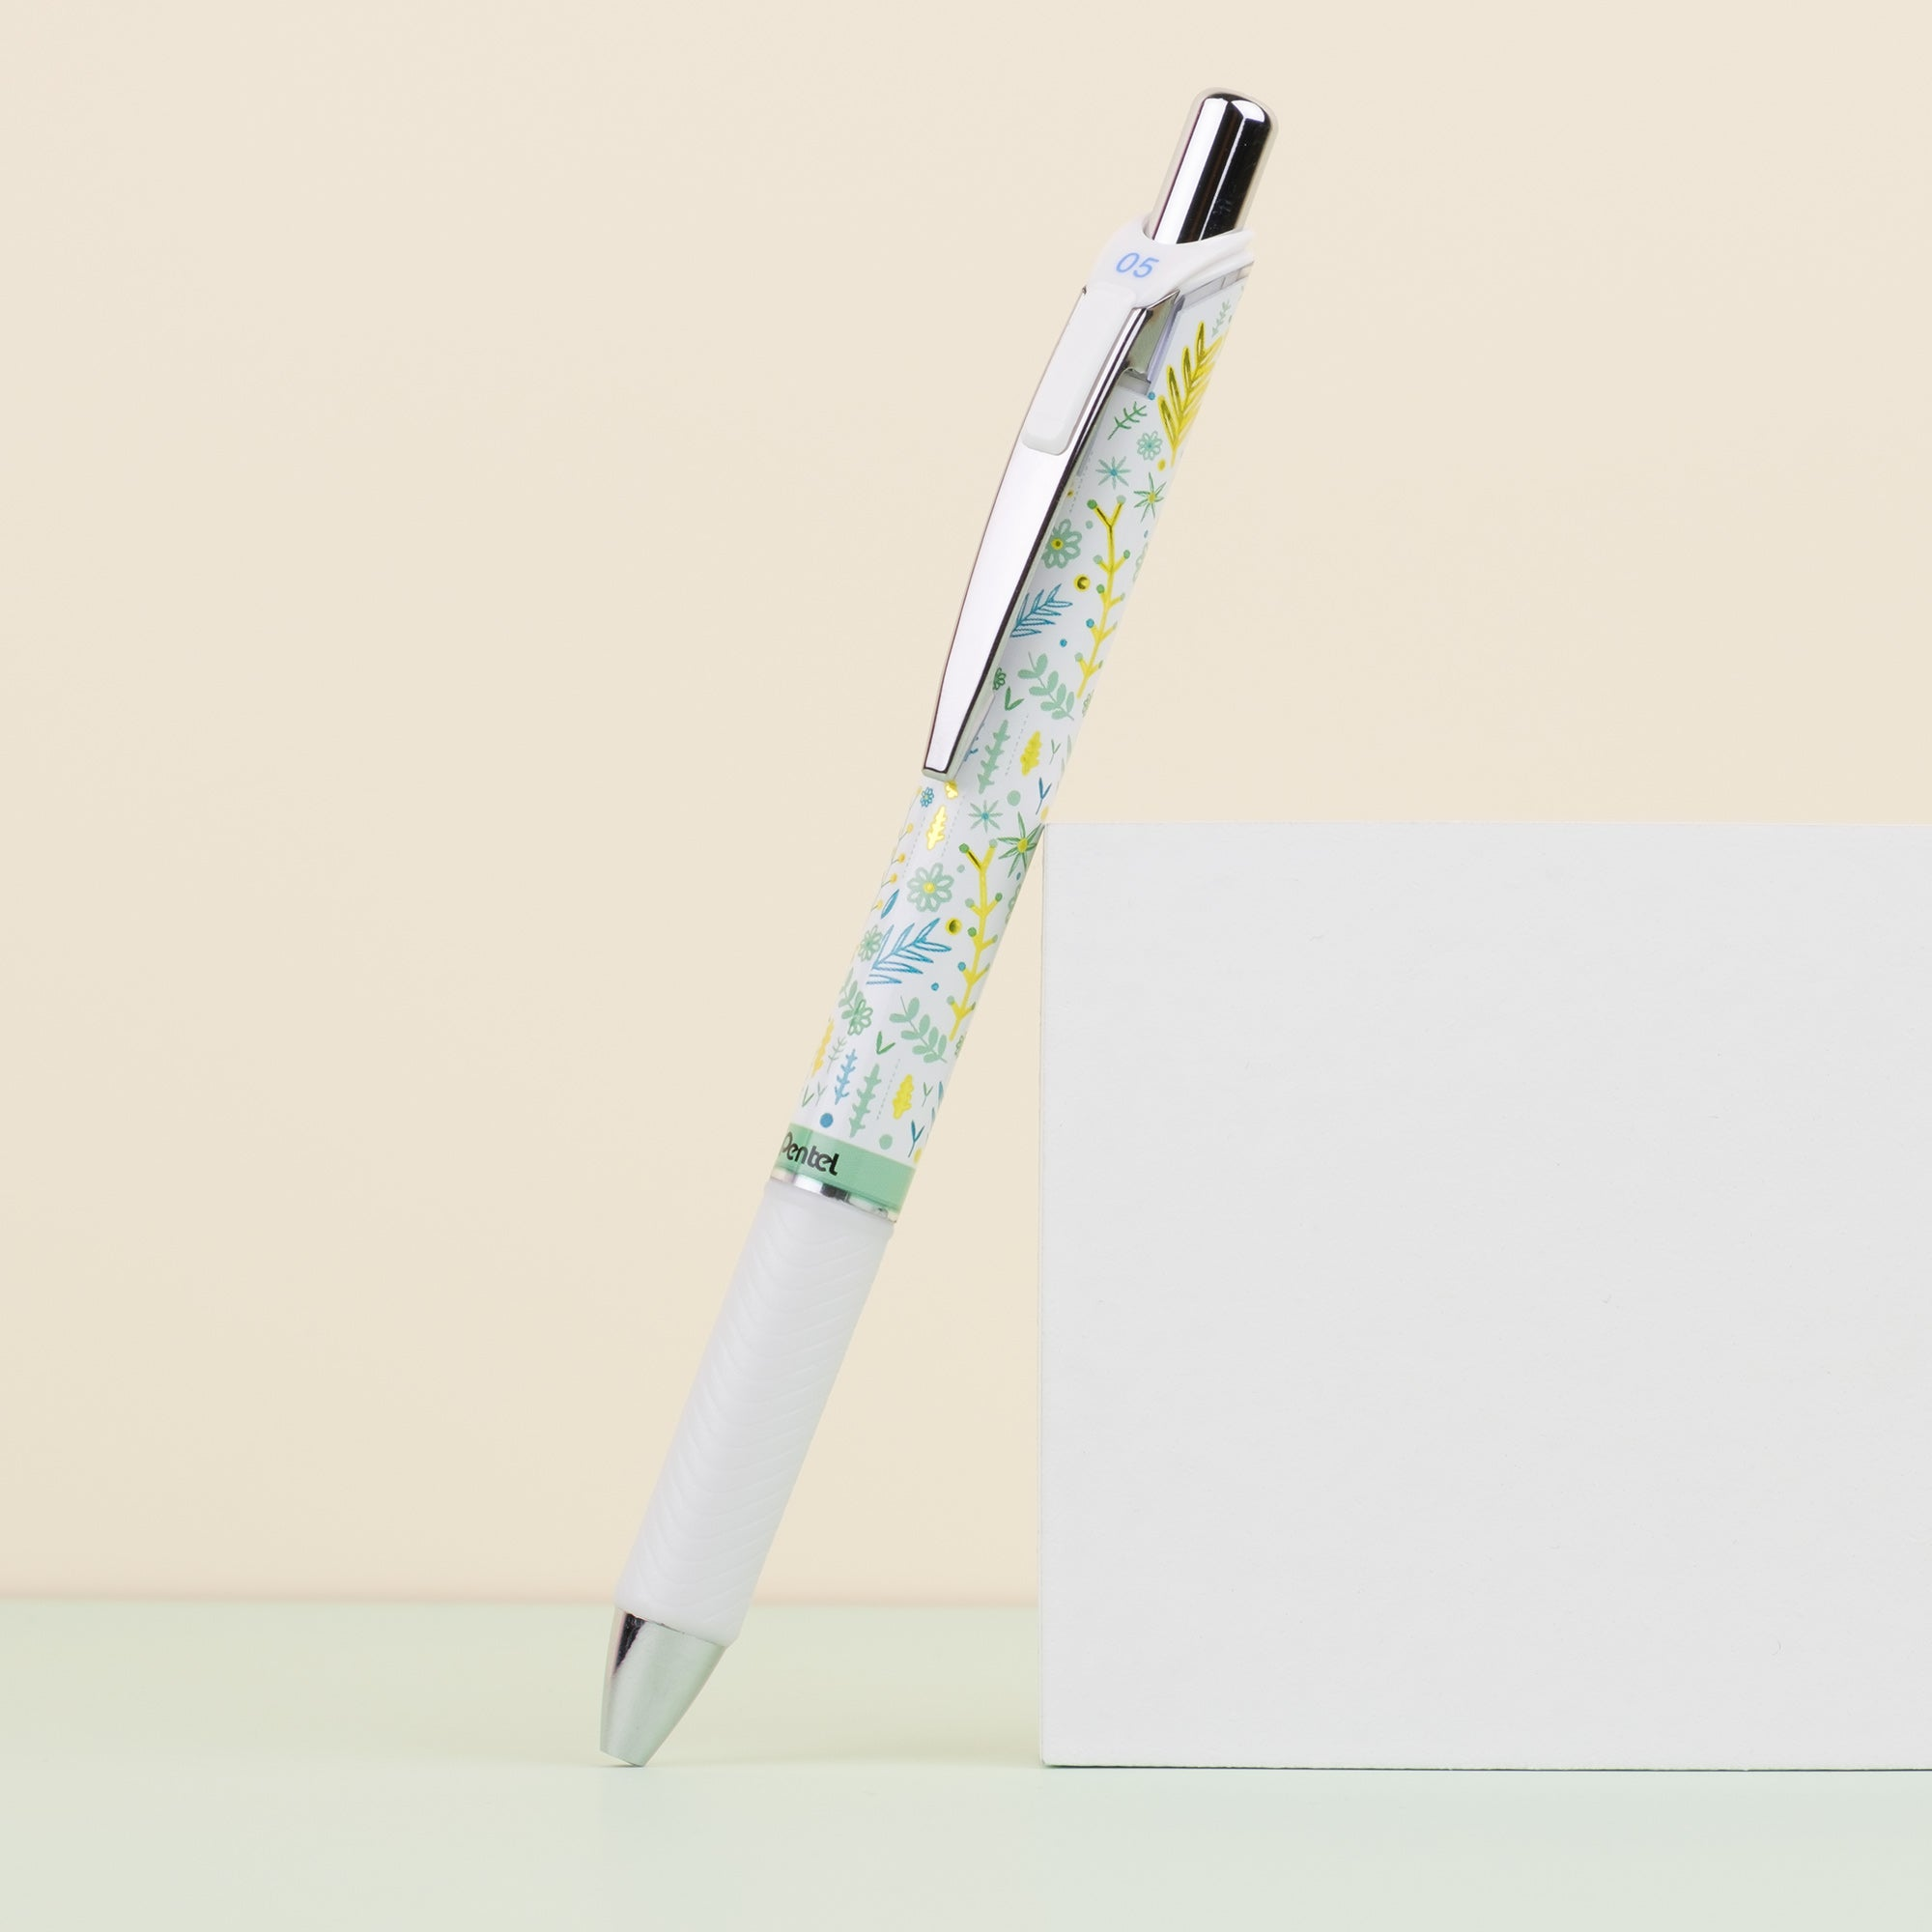 Pentel Energel Kawaii+ 4 Floral Limited Edition - 0.5 mm - Dainty Flowers